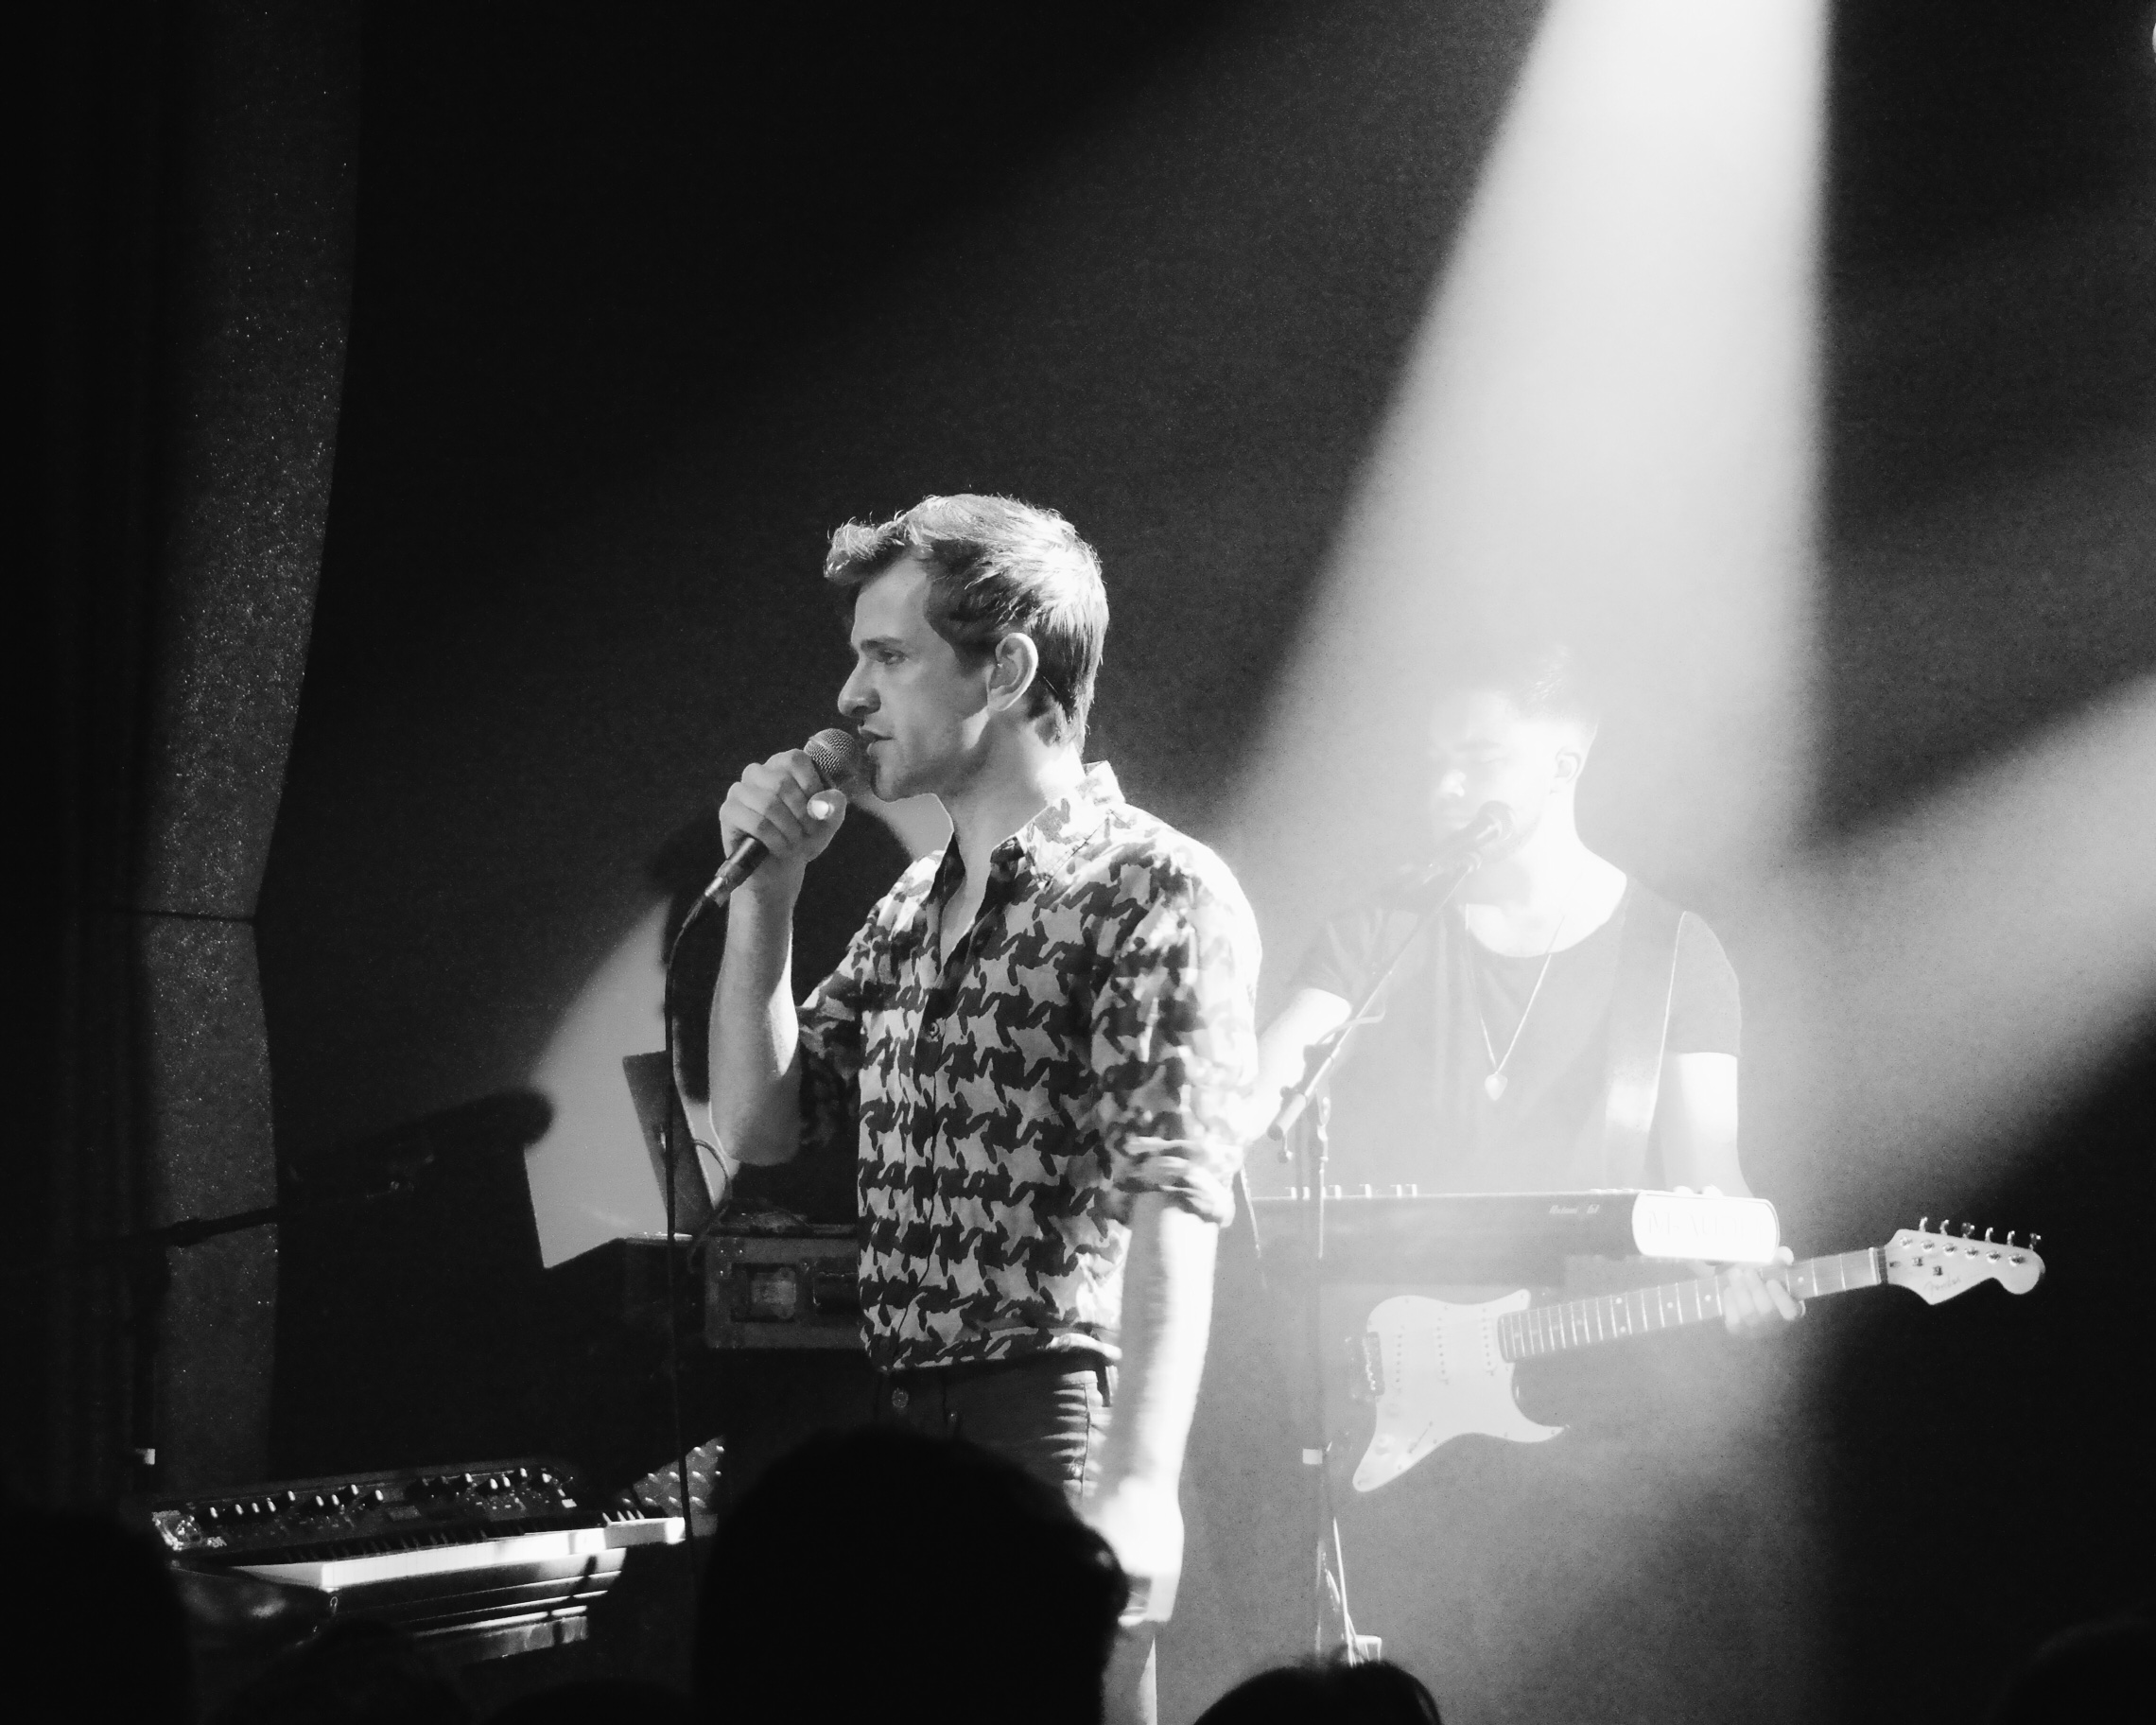 Josef Salvat singer Diamonds Hustler concert live Les Etoiles Paris music tour photo stage by United States of Paris blog